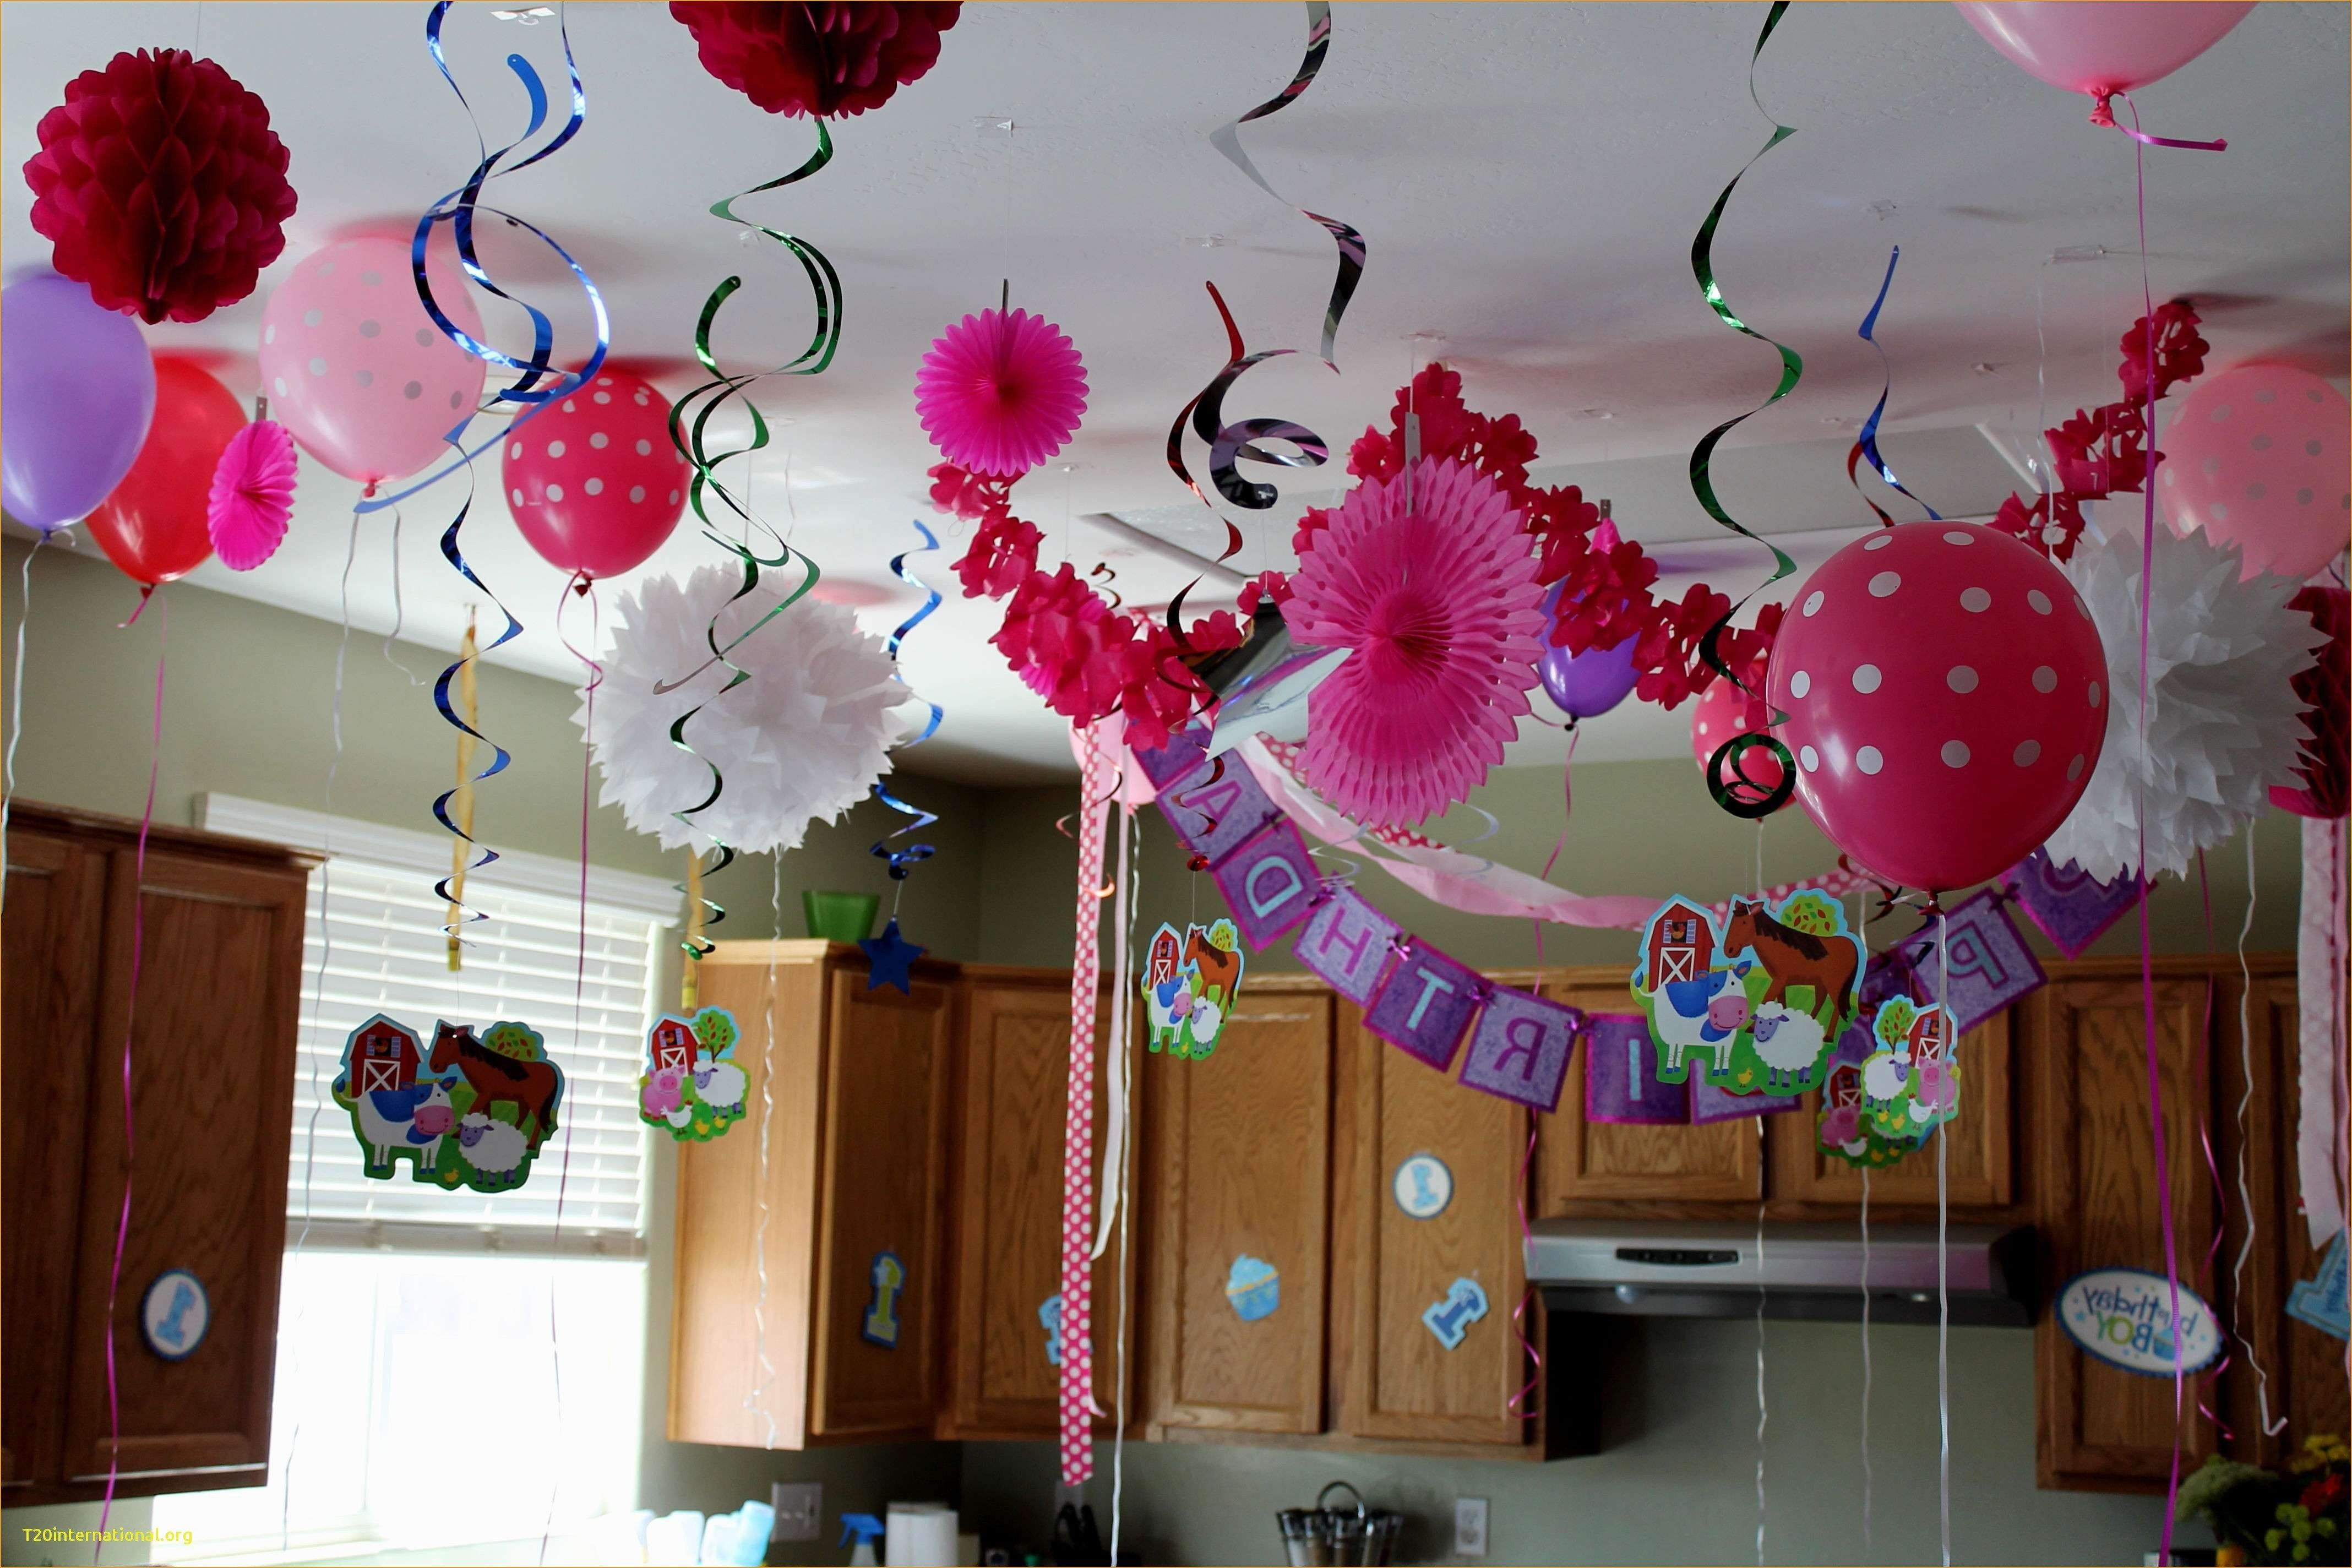 Cheap Party Decoration Ideas For Adults Fresh Decoration Ideas Birthday Birthday Decorations At Home Diy Birthday Decorations Simple Birthday Decorations